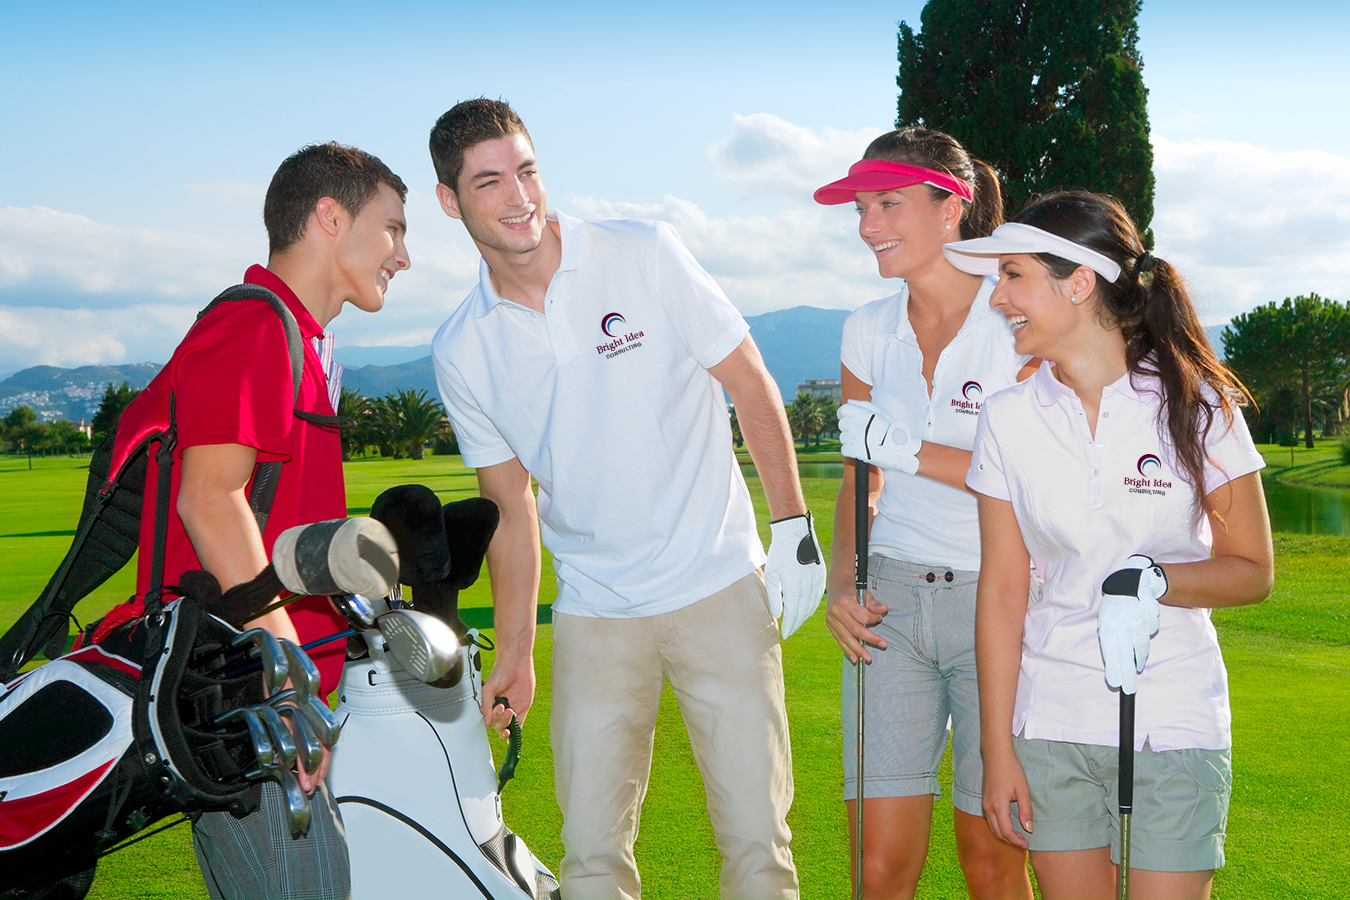 group of young adults golfing and wearing branded polos